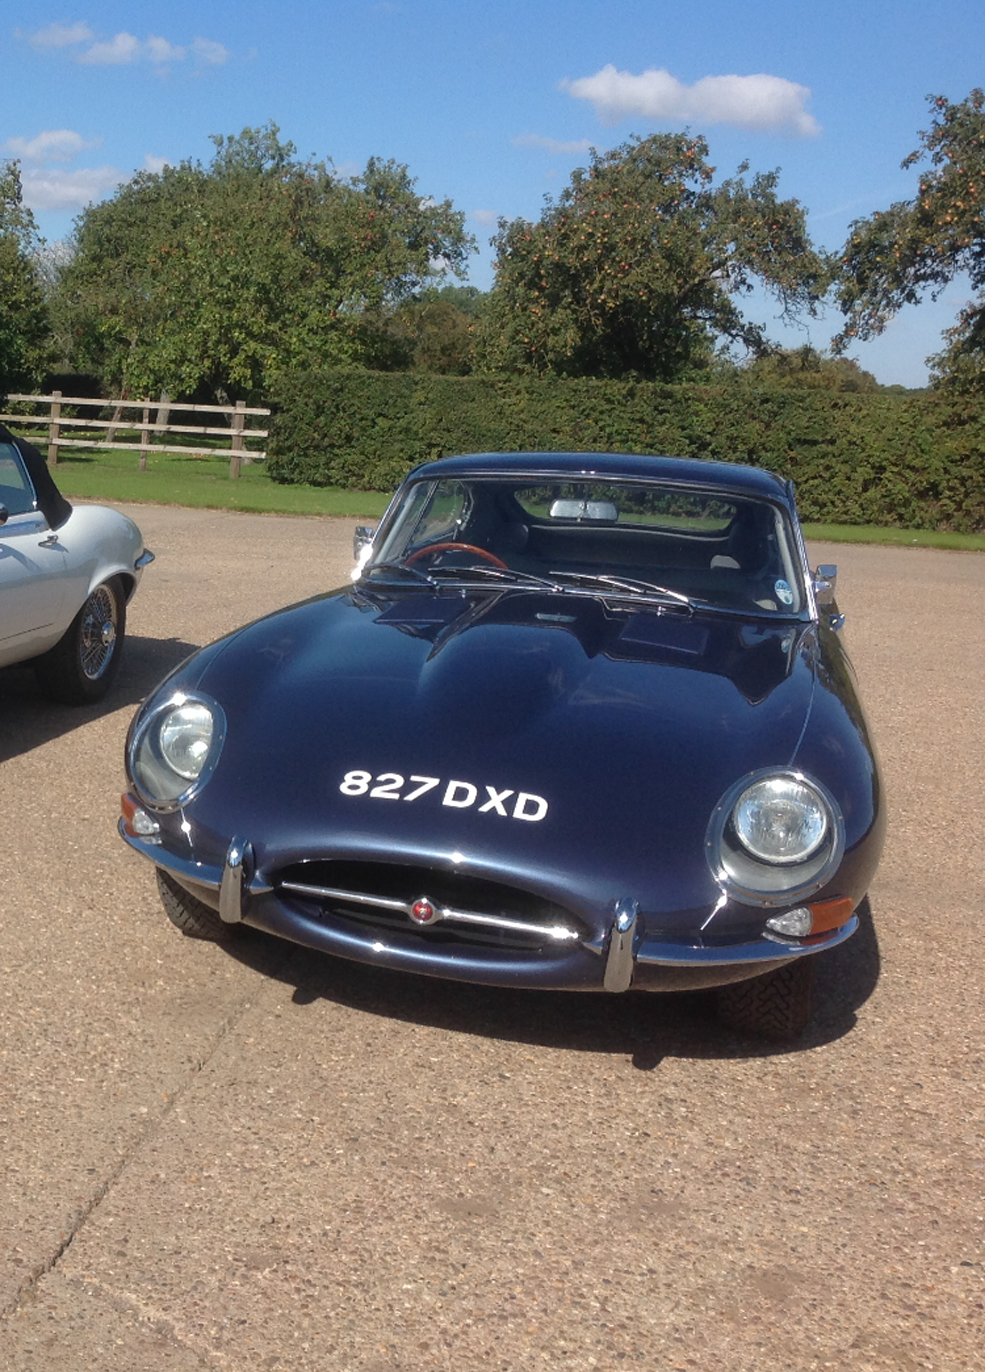 STOLEN E-Type - Chassis 860225 | New Forest Classic Cars